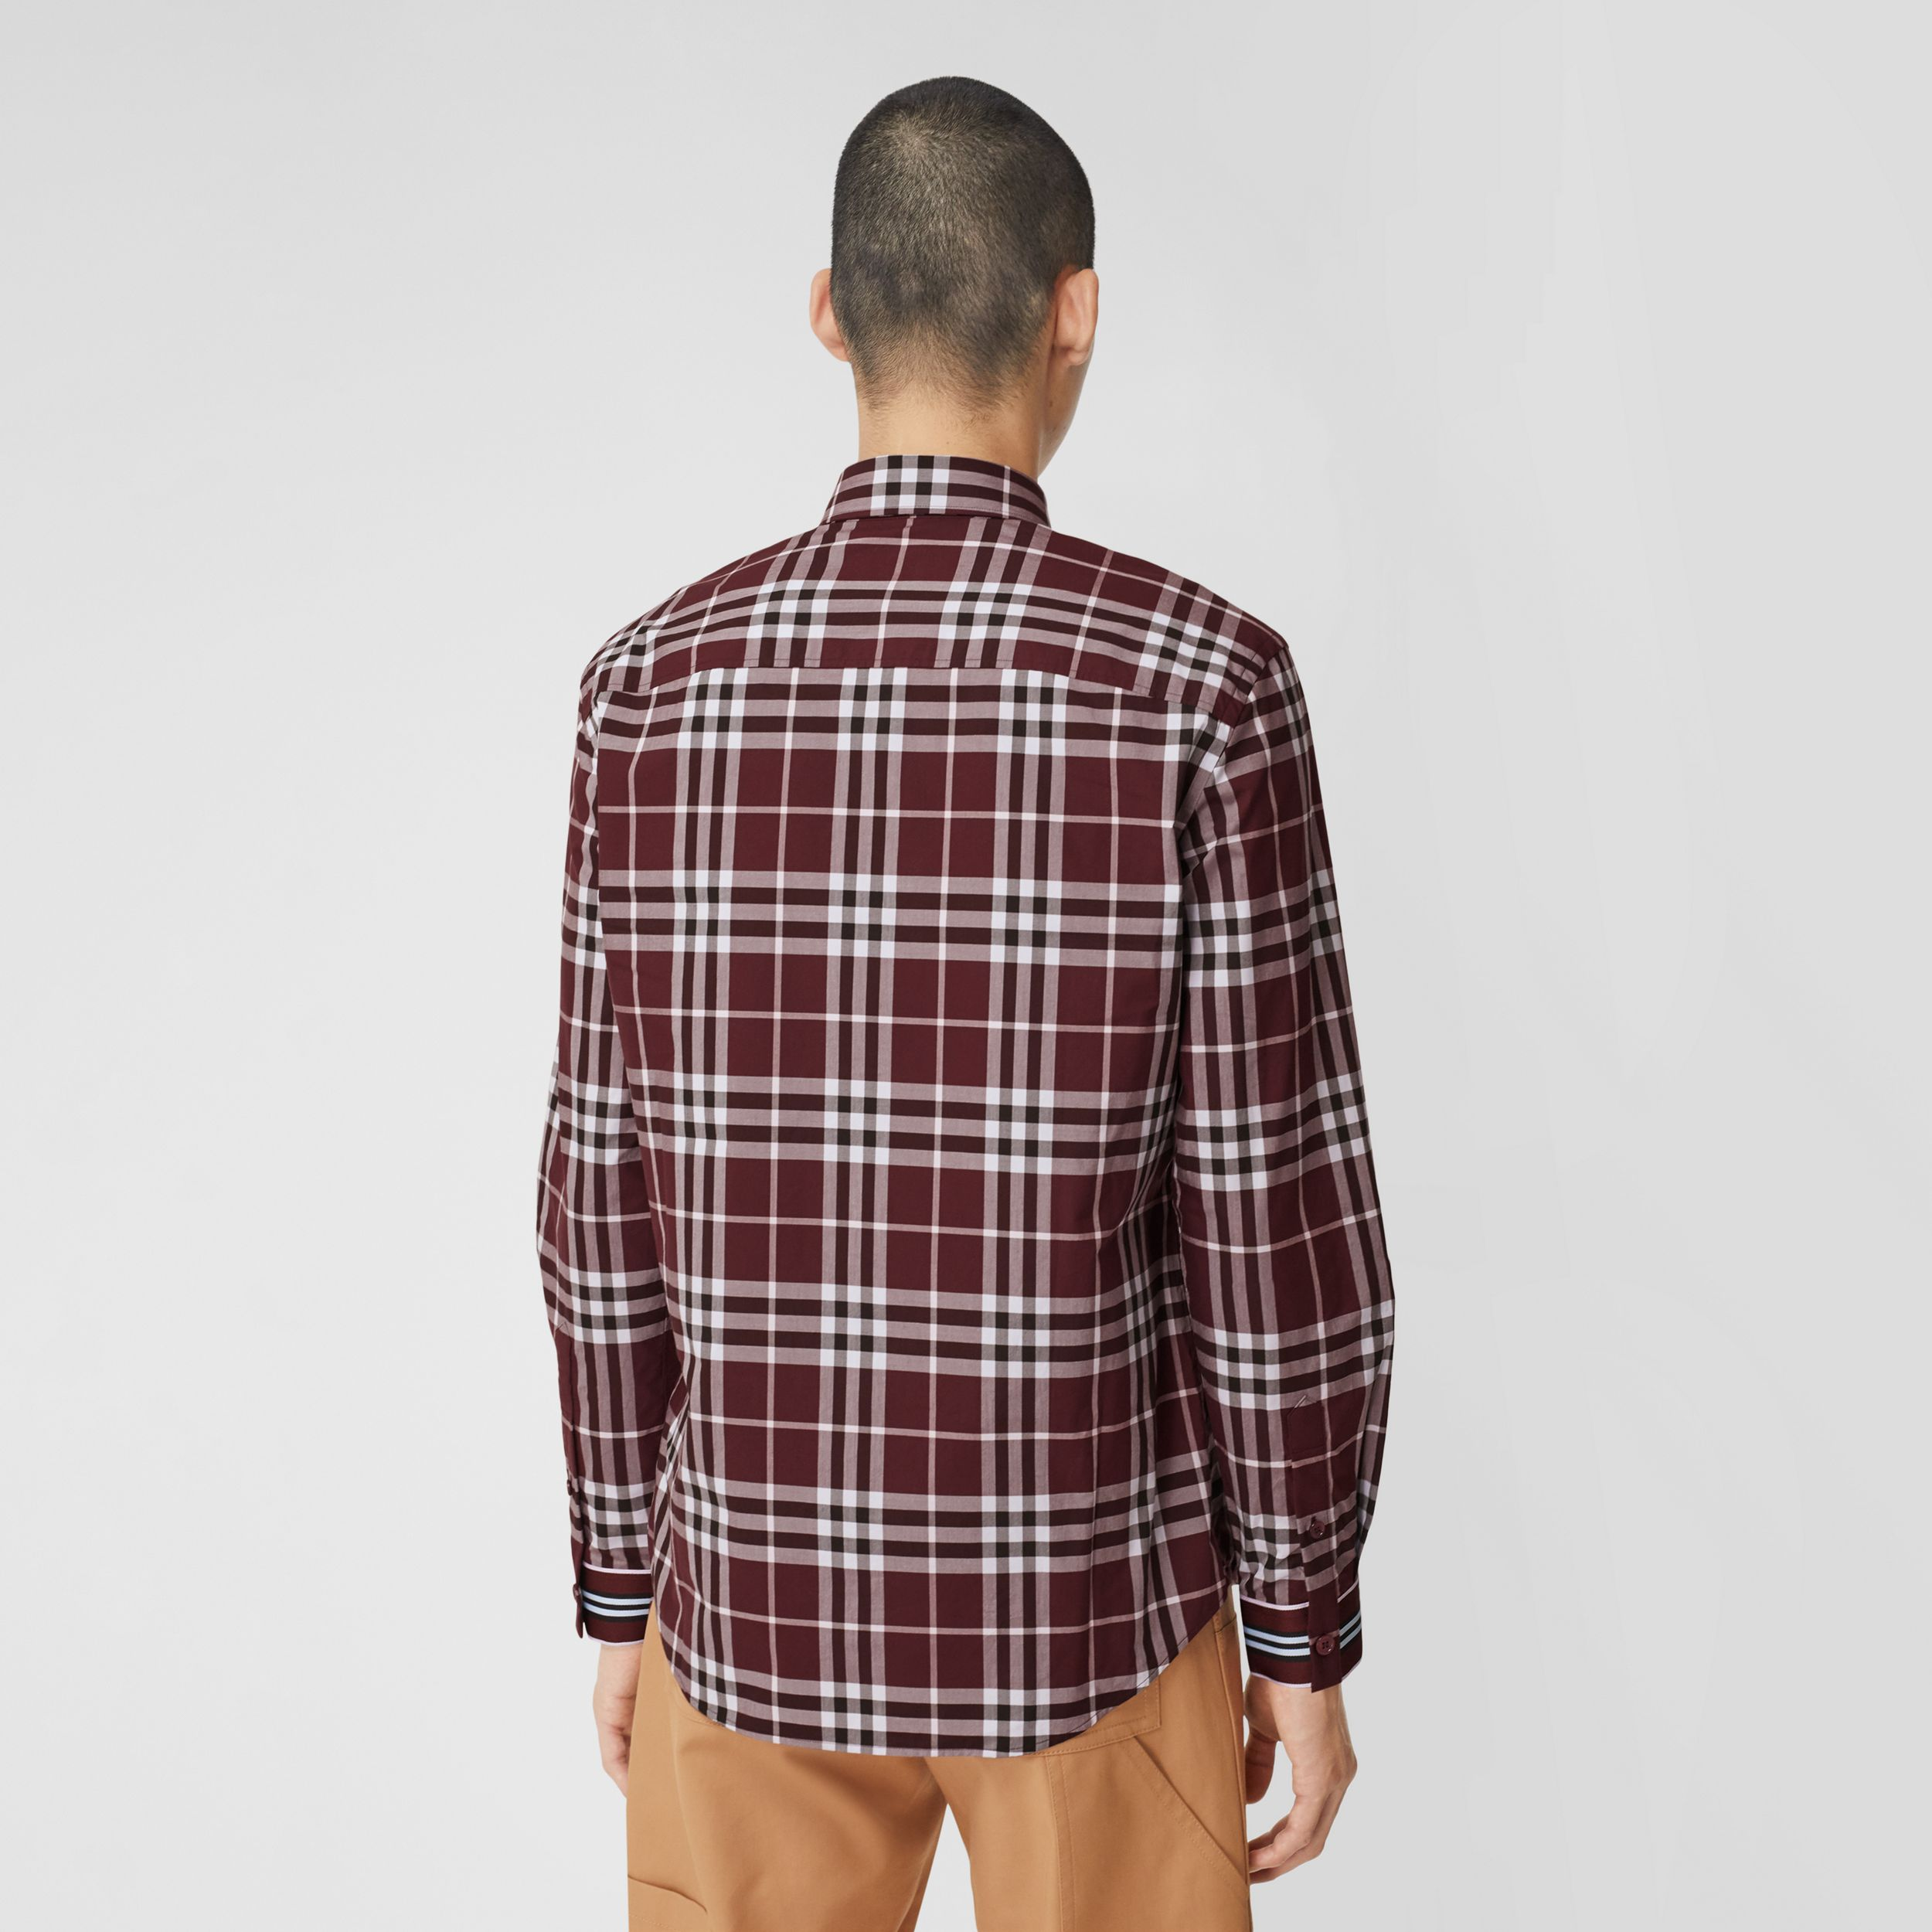 Stripe Cuff Check Cotton Shirt in Burgundy Red - Men | Burberry - 3